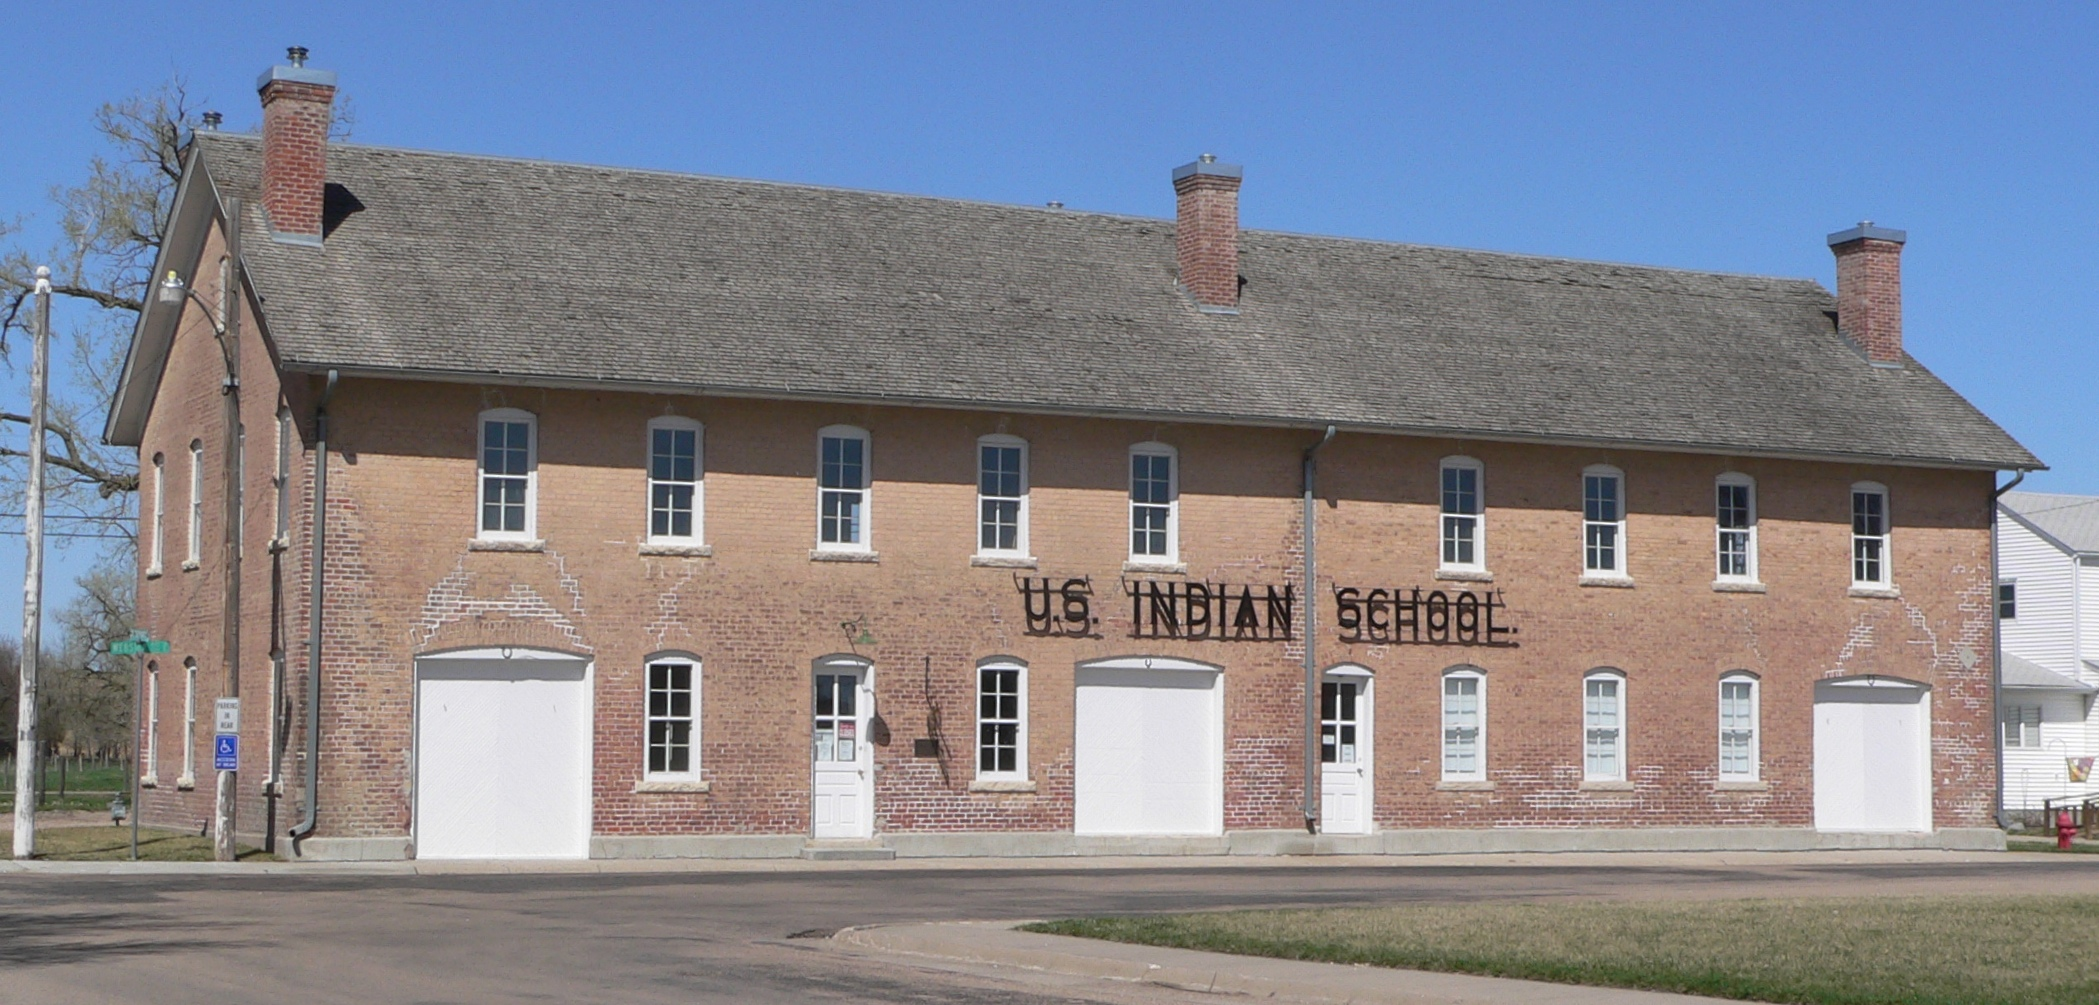 photograph of Genoa U.S. Indian School